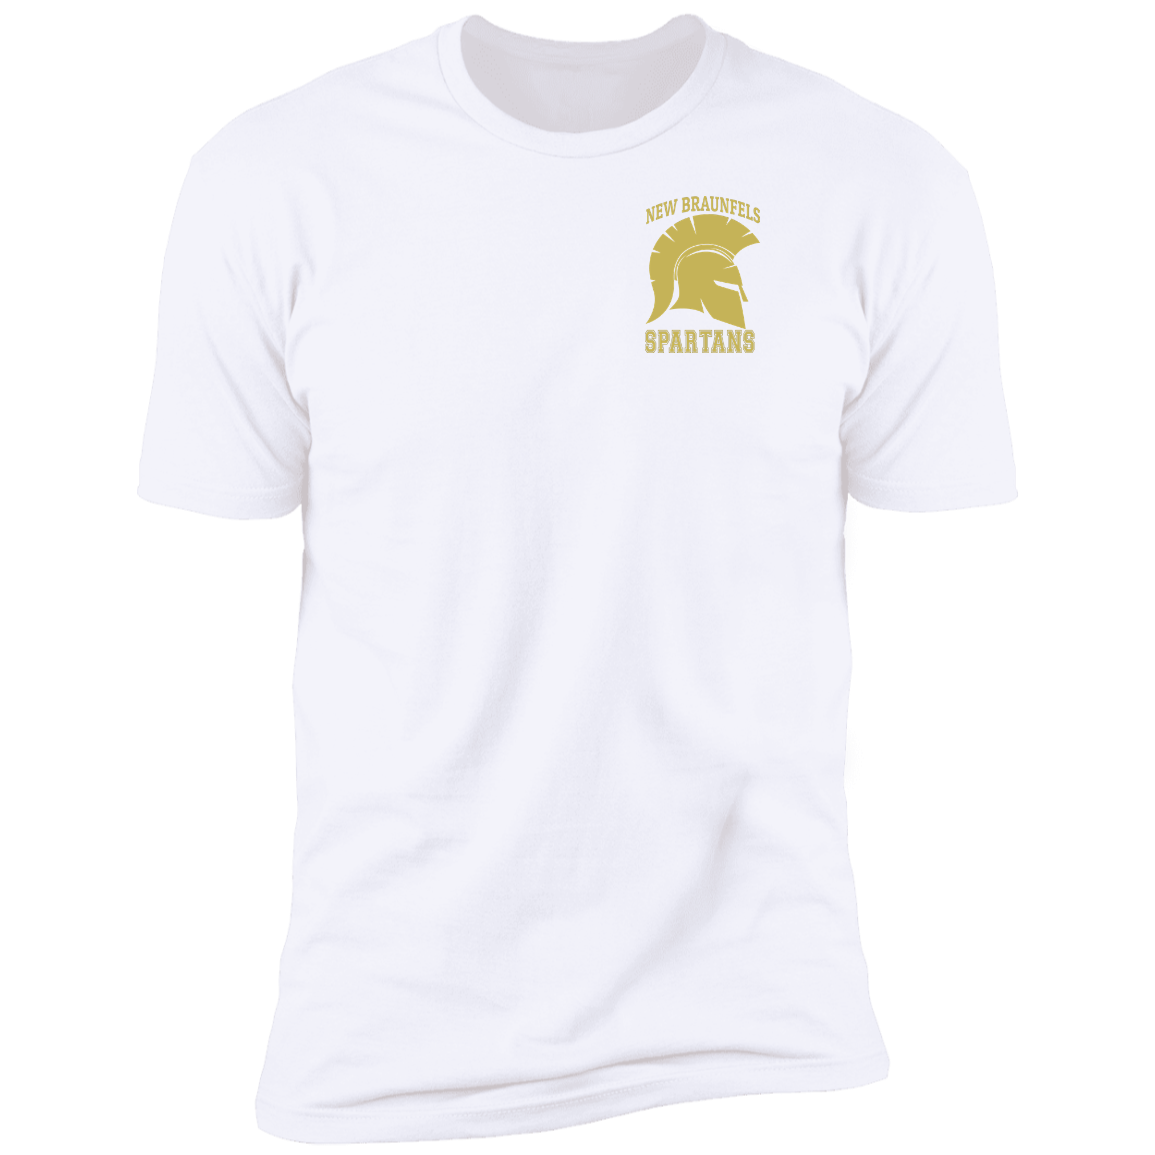 Spartans Premium Short Sleeve T-Shirt